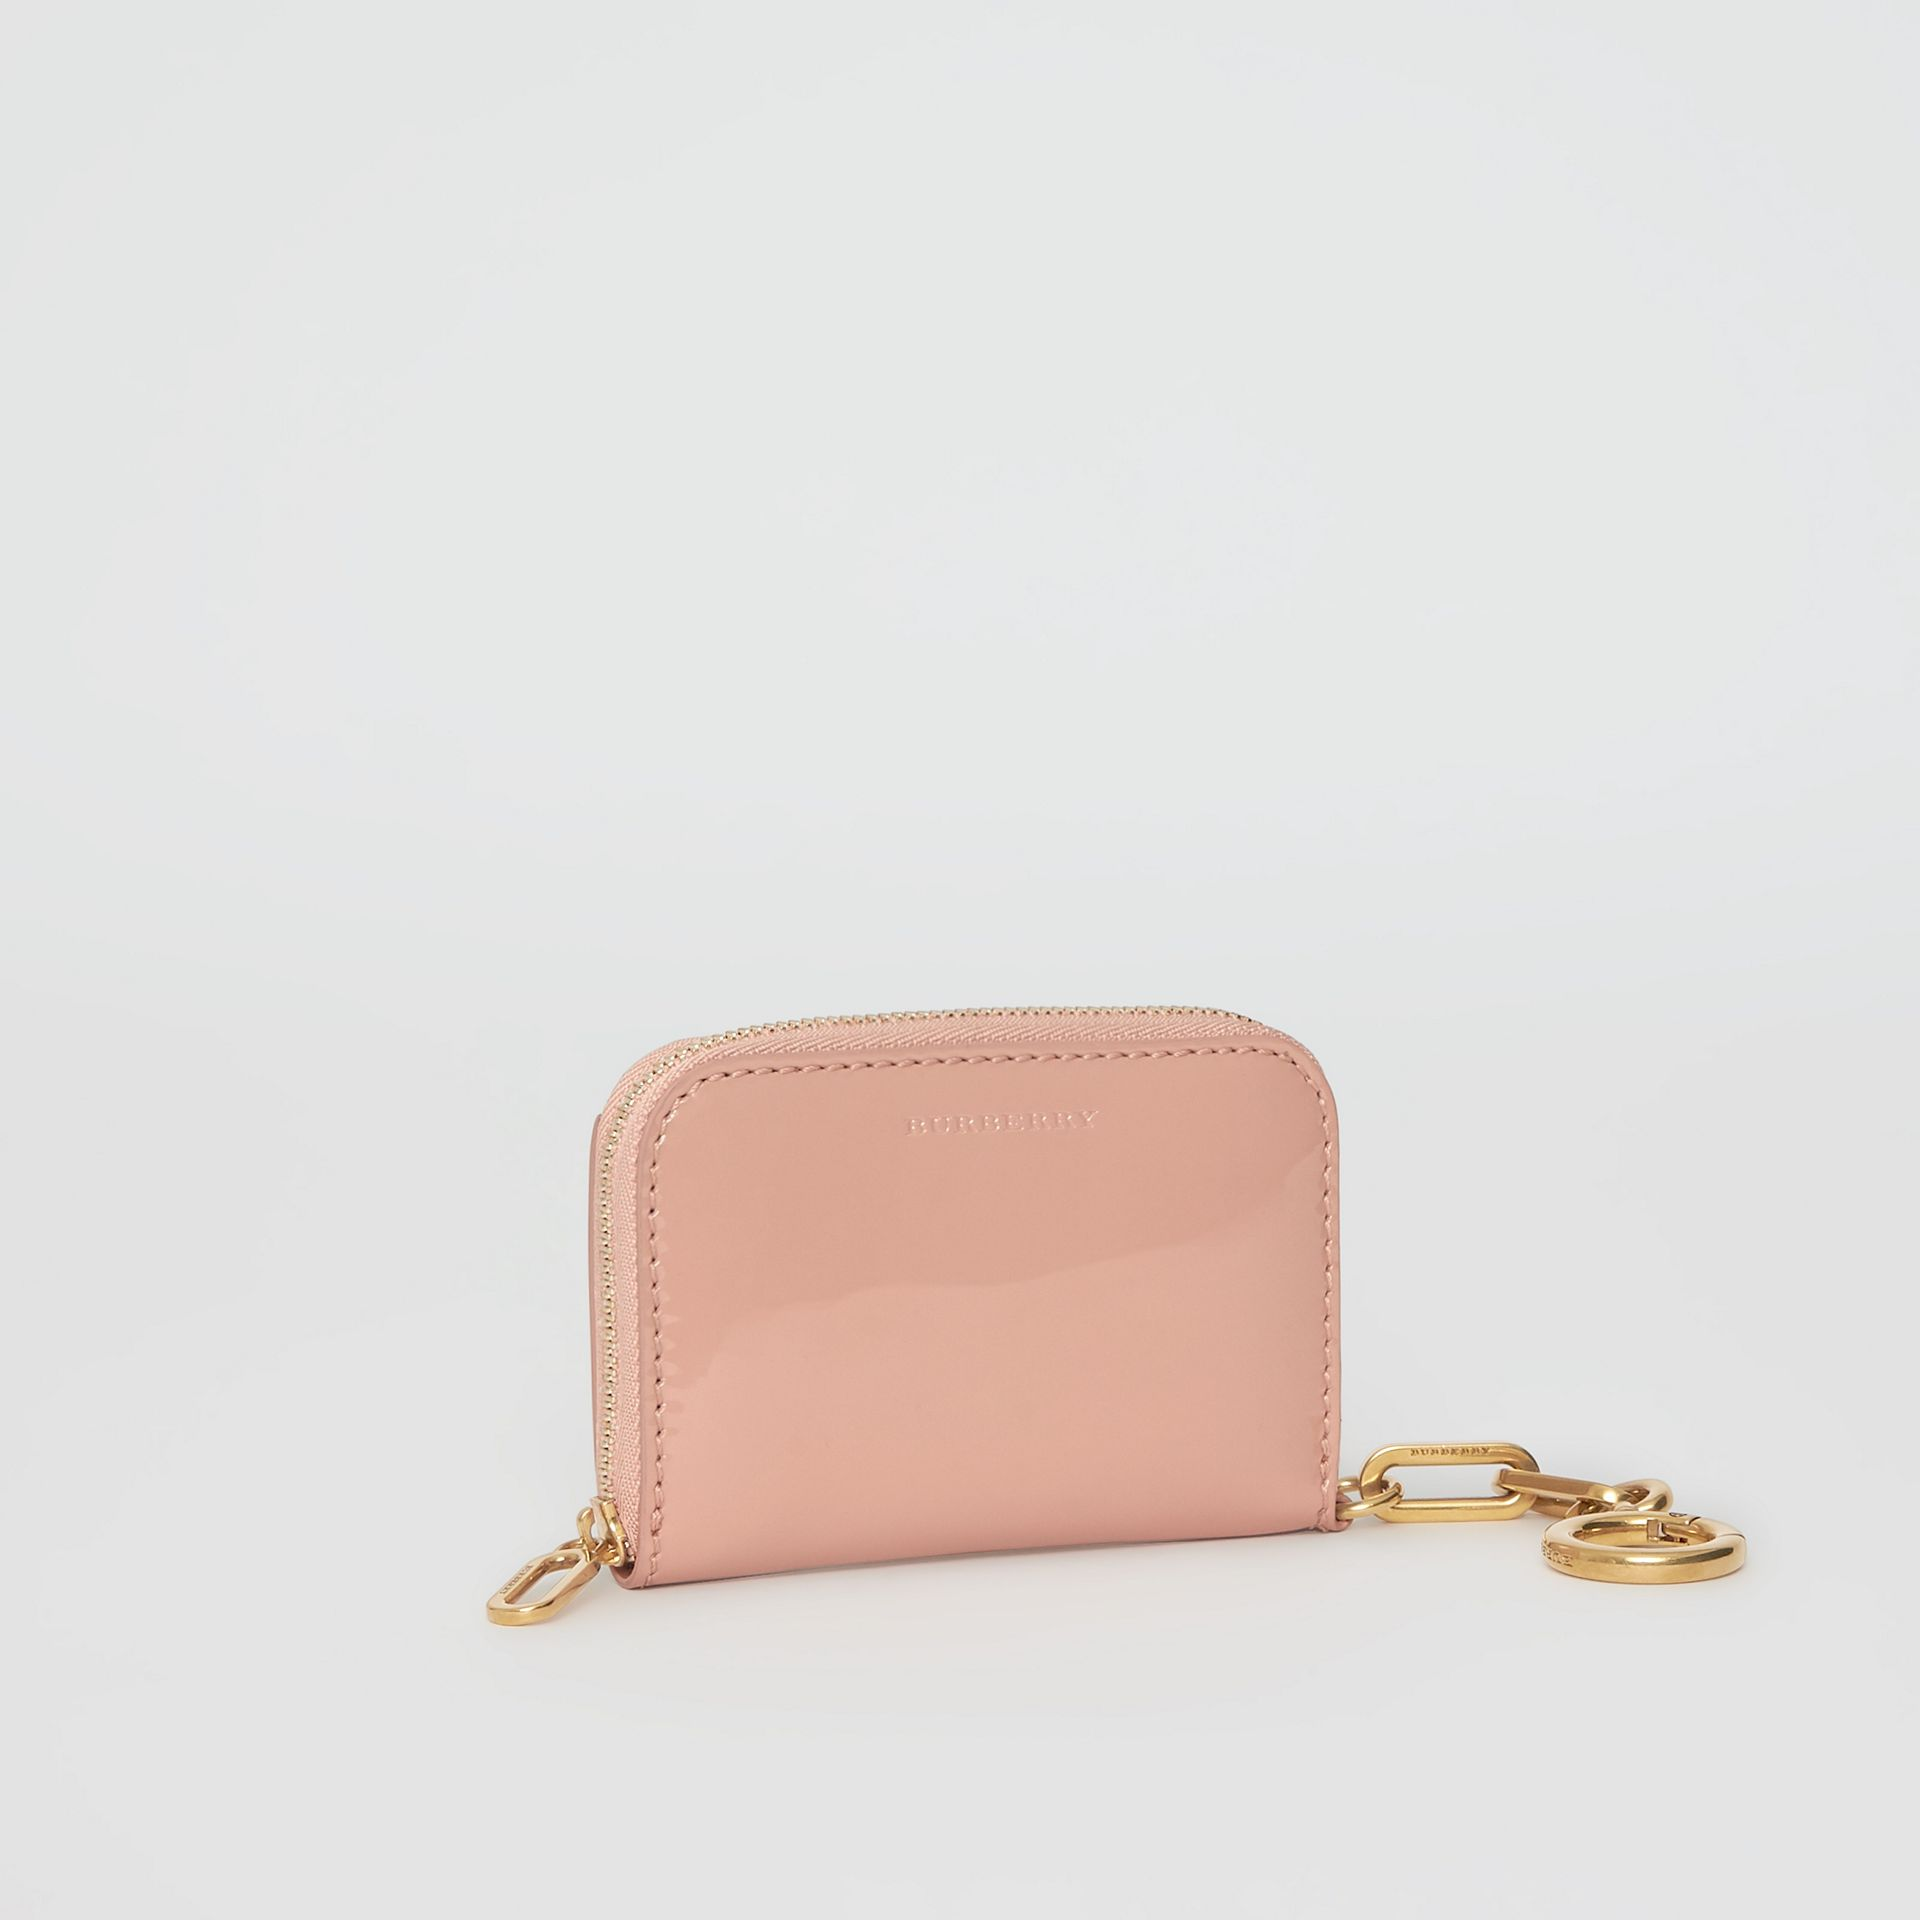 Link Detail Patent Leather Ziparound Wallet in Pale Fawn Pink - Women | Burberry United Kingdom - gallery image 4